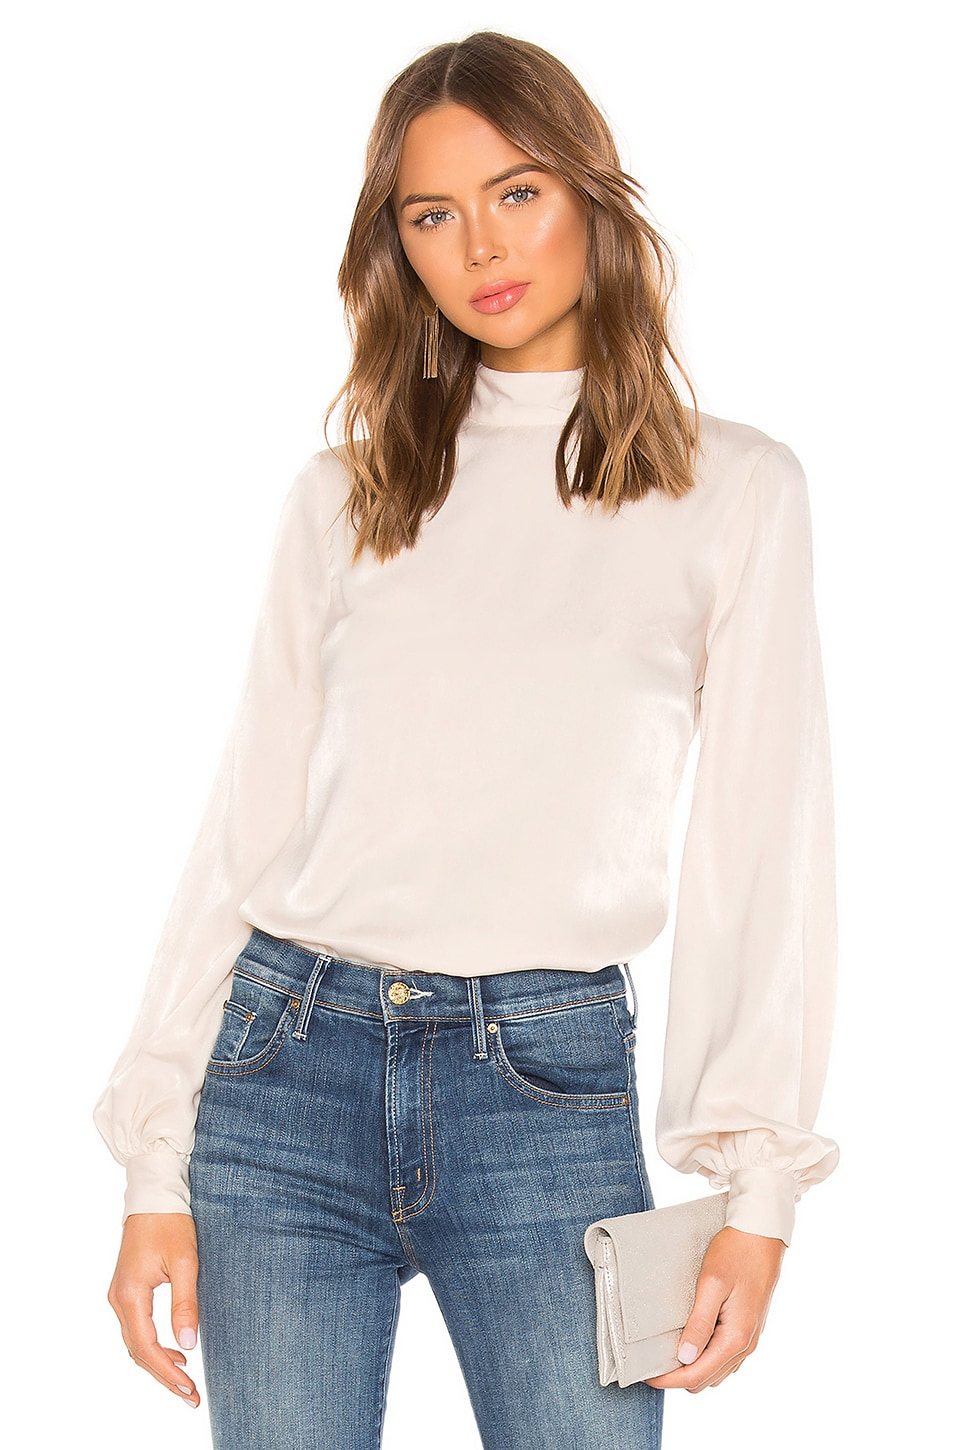 House of Harlow 1960 X REVOLVE Faya Blouse in Ivory